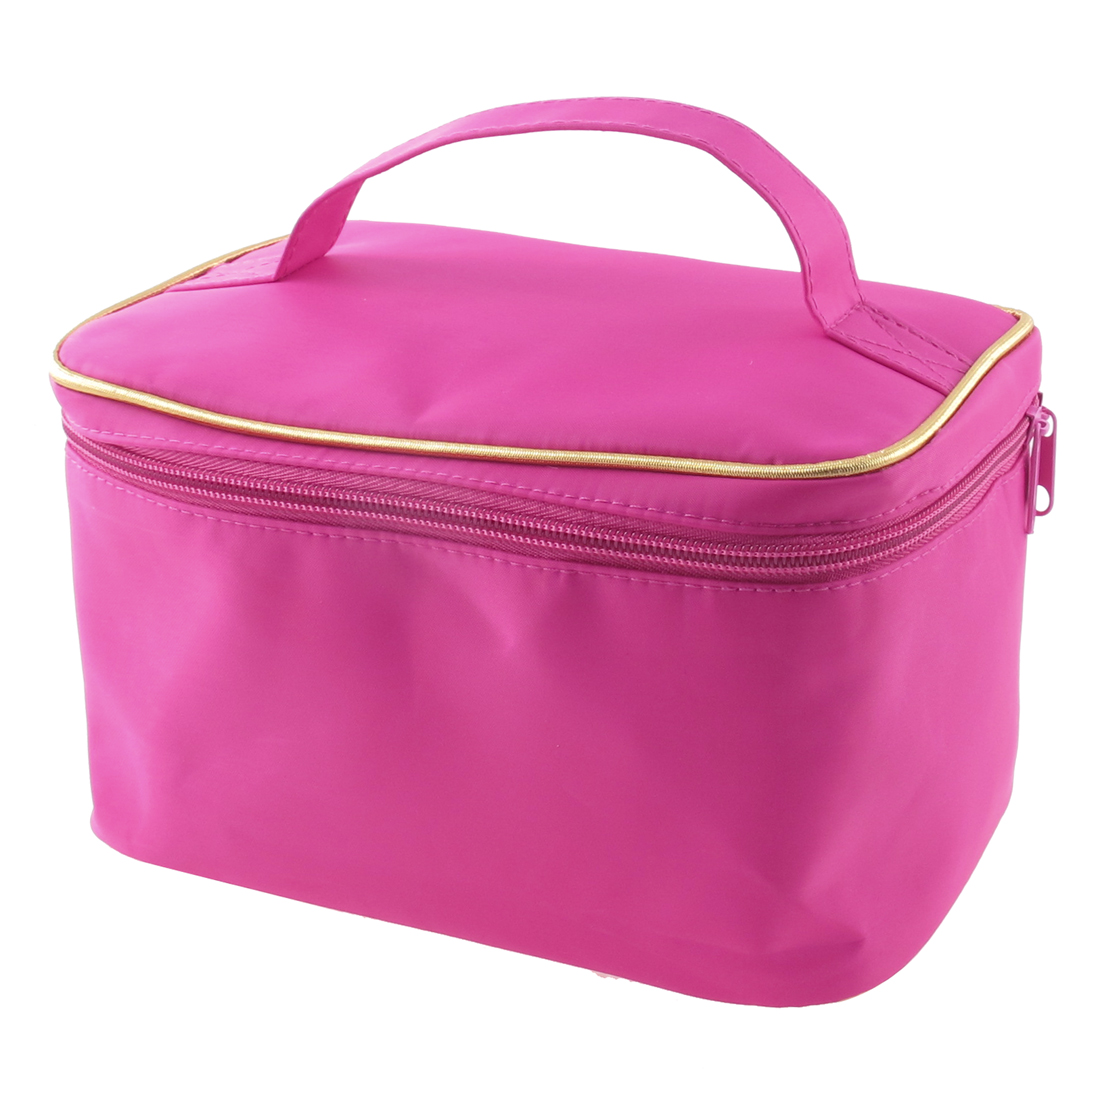 Woman Zipper Closure Traveling Cosmetic Bag Purse Organizer Tool w Mirror Fushcia